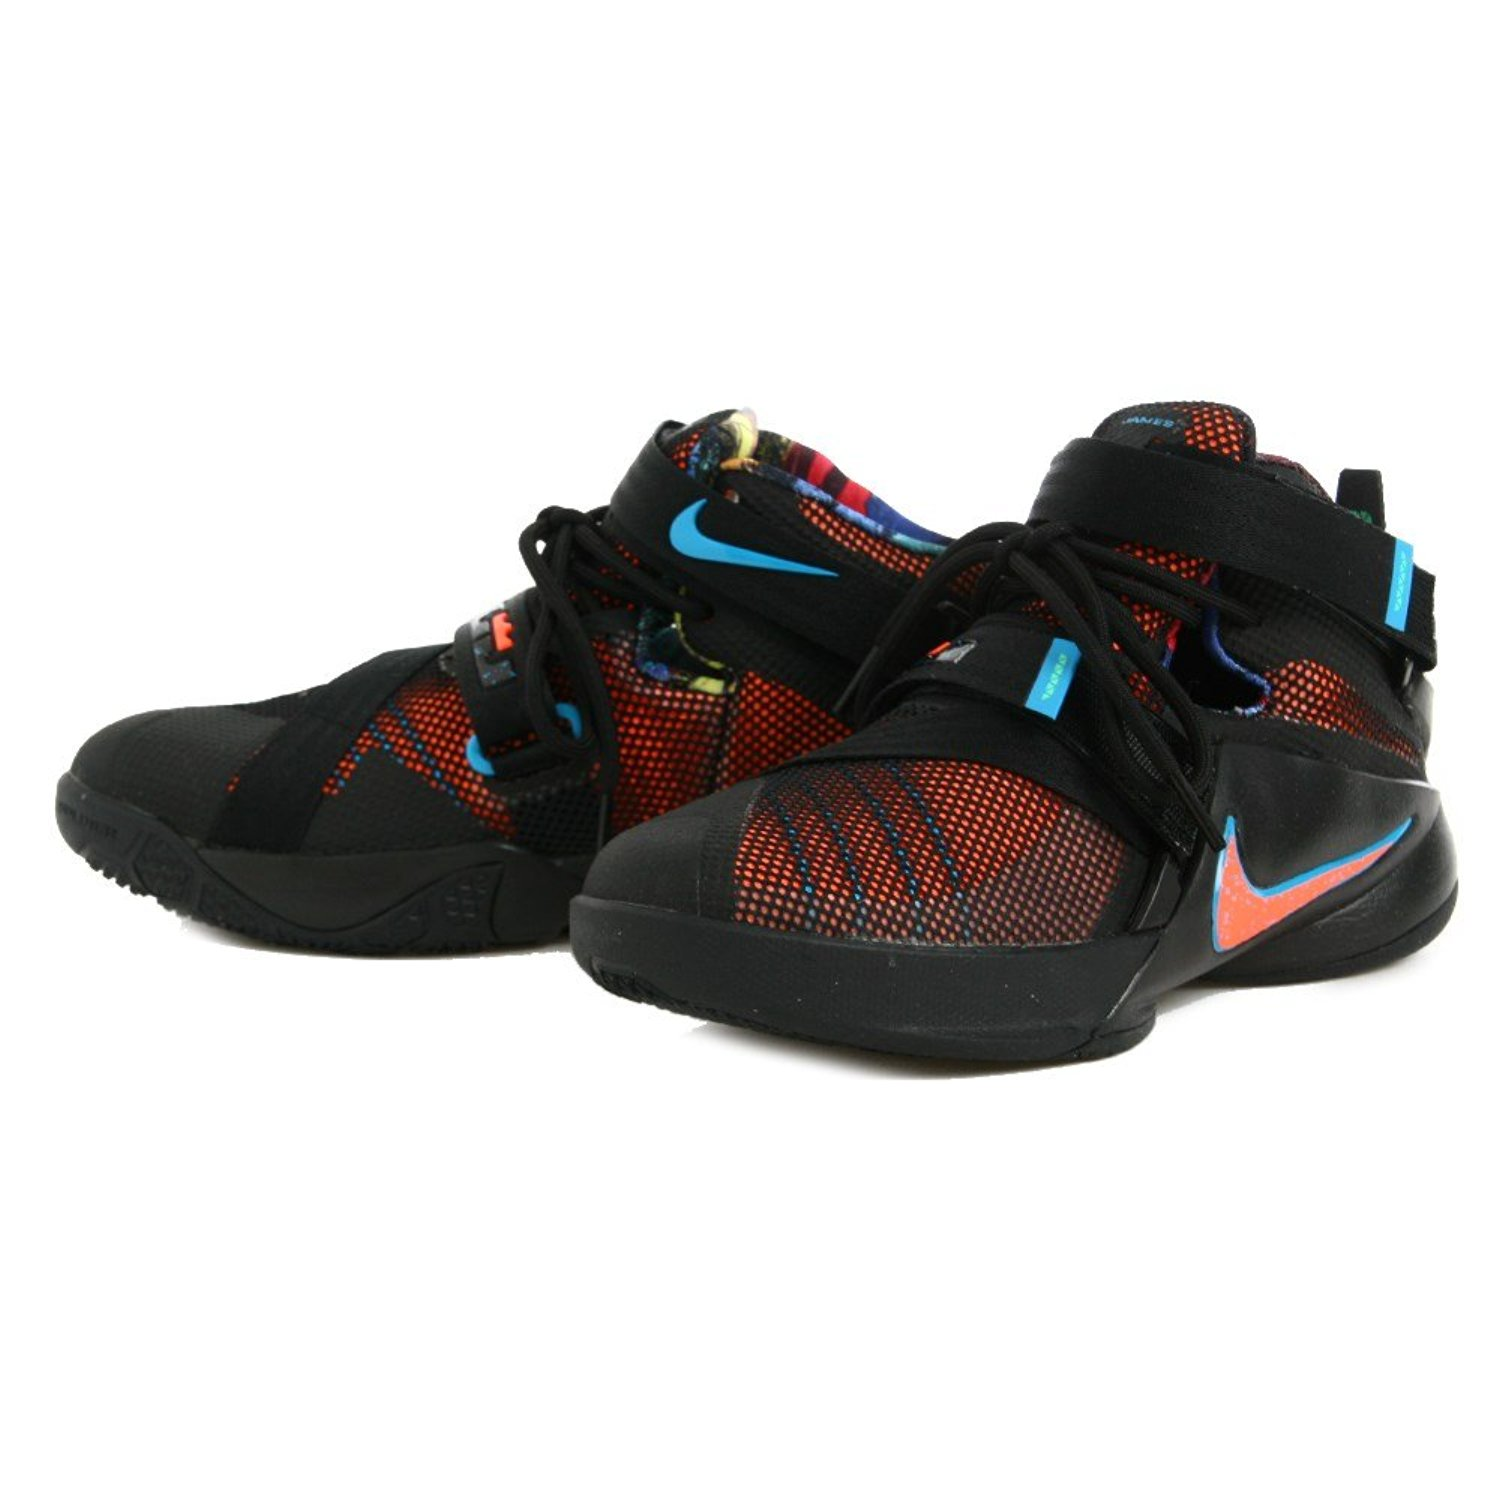 d6ff1e39e5c Get Quotations · Nike Boys LeBron Soldier 9 GS Basketball Shoes Hyper  Orange Blue Lagoon 7Y